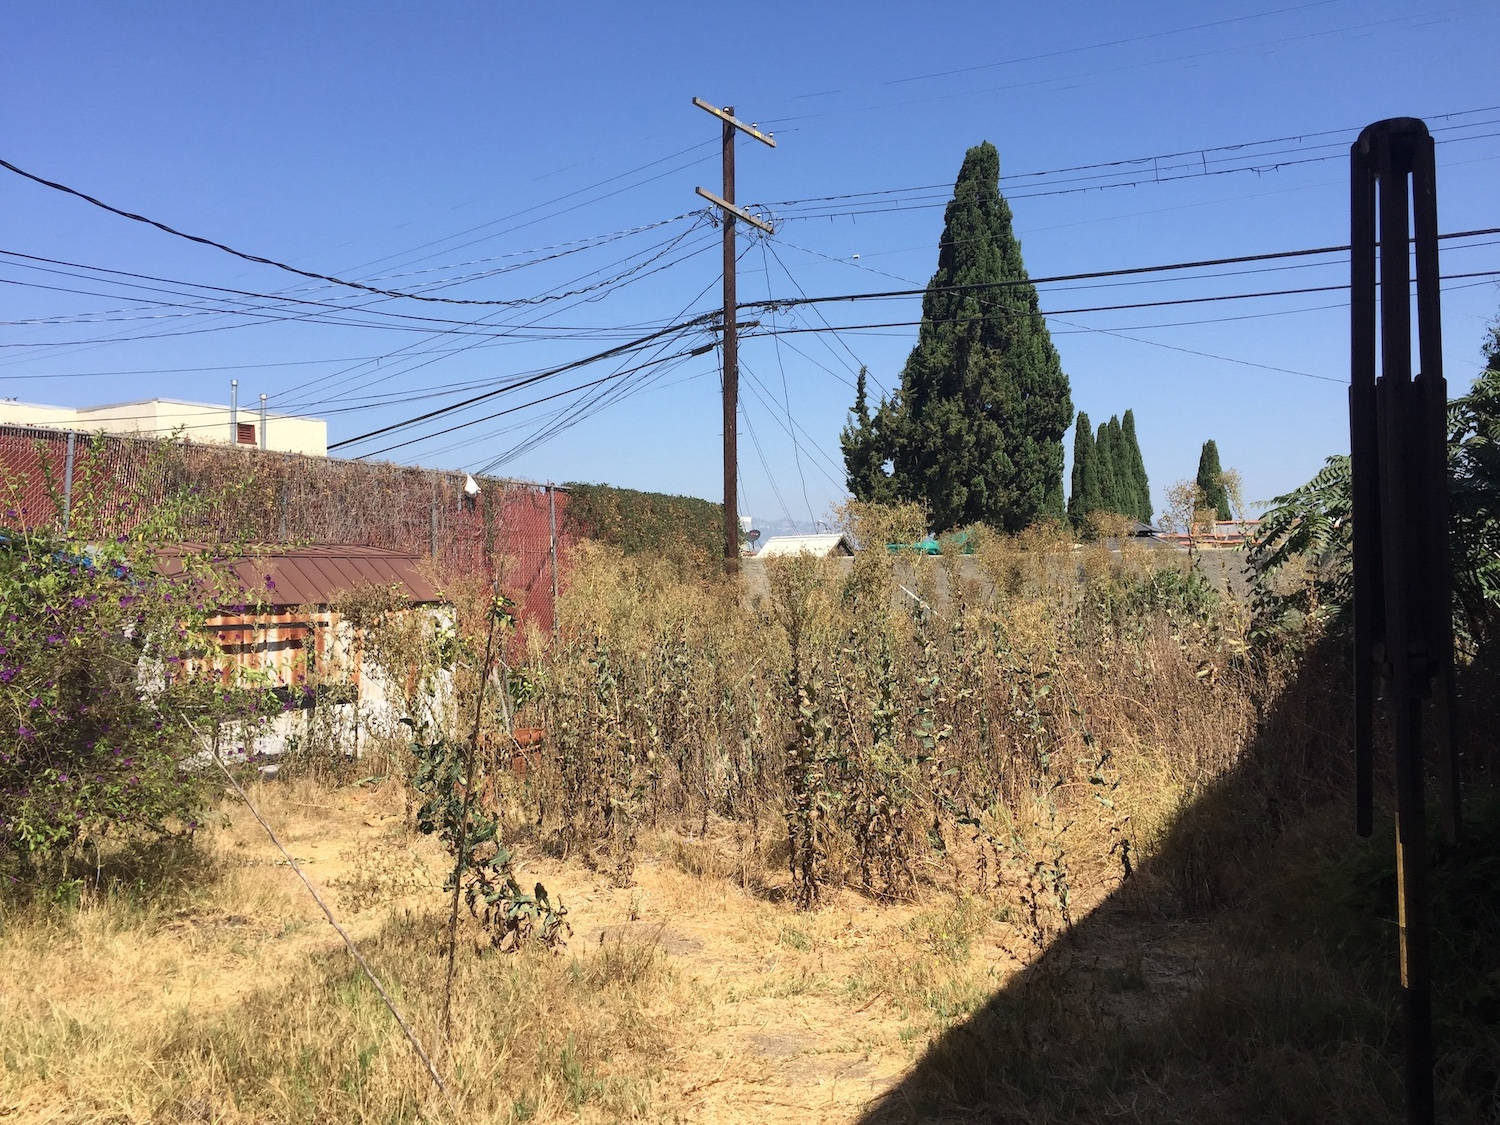 This is what the yard, approximately 4,000 square feet, looked like when Rozae found the property.